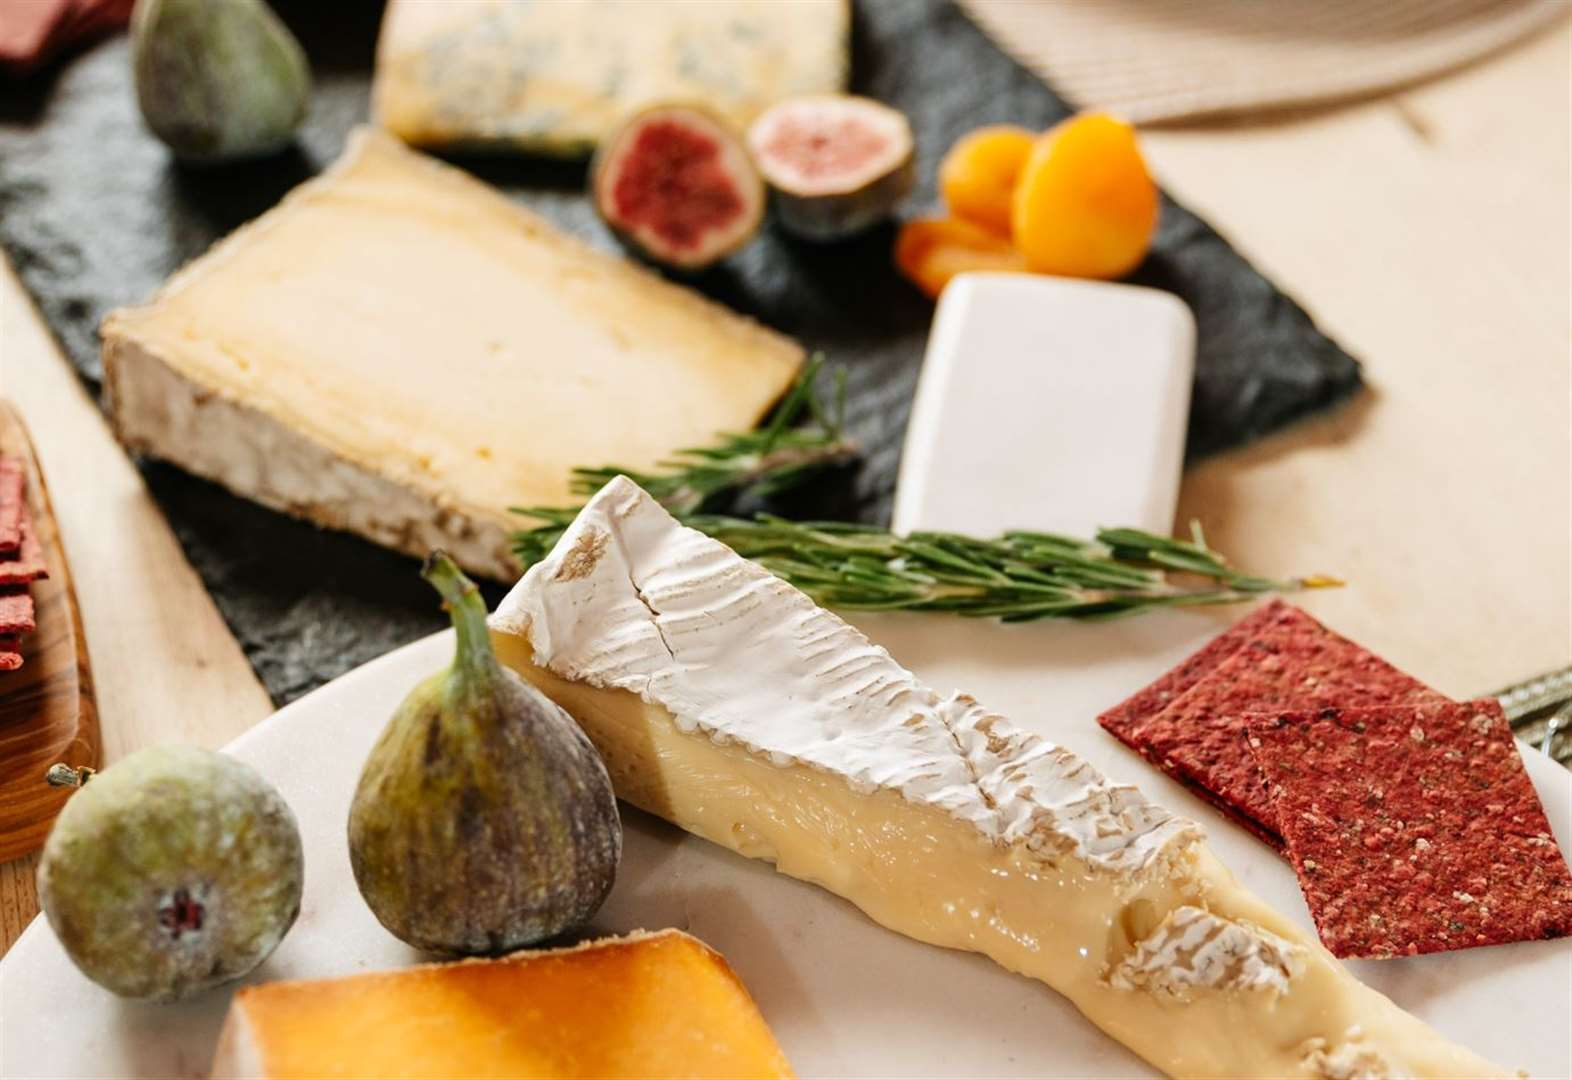 Cheese subscription service open for orders